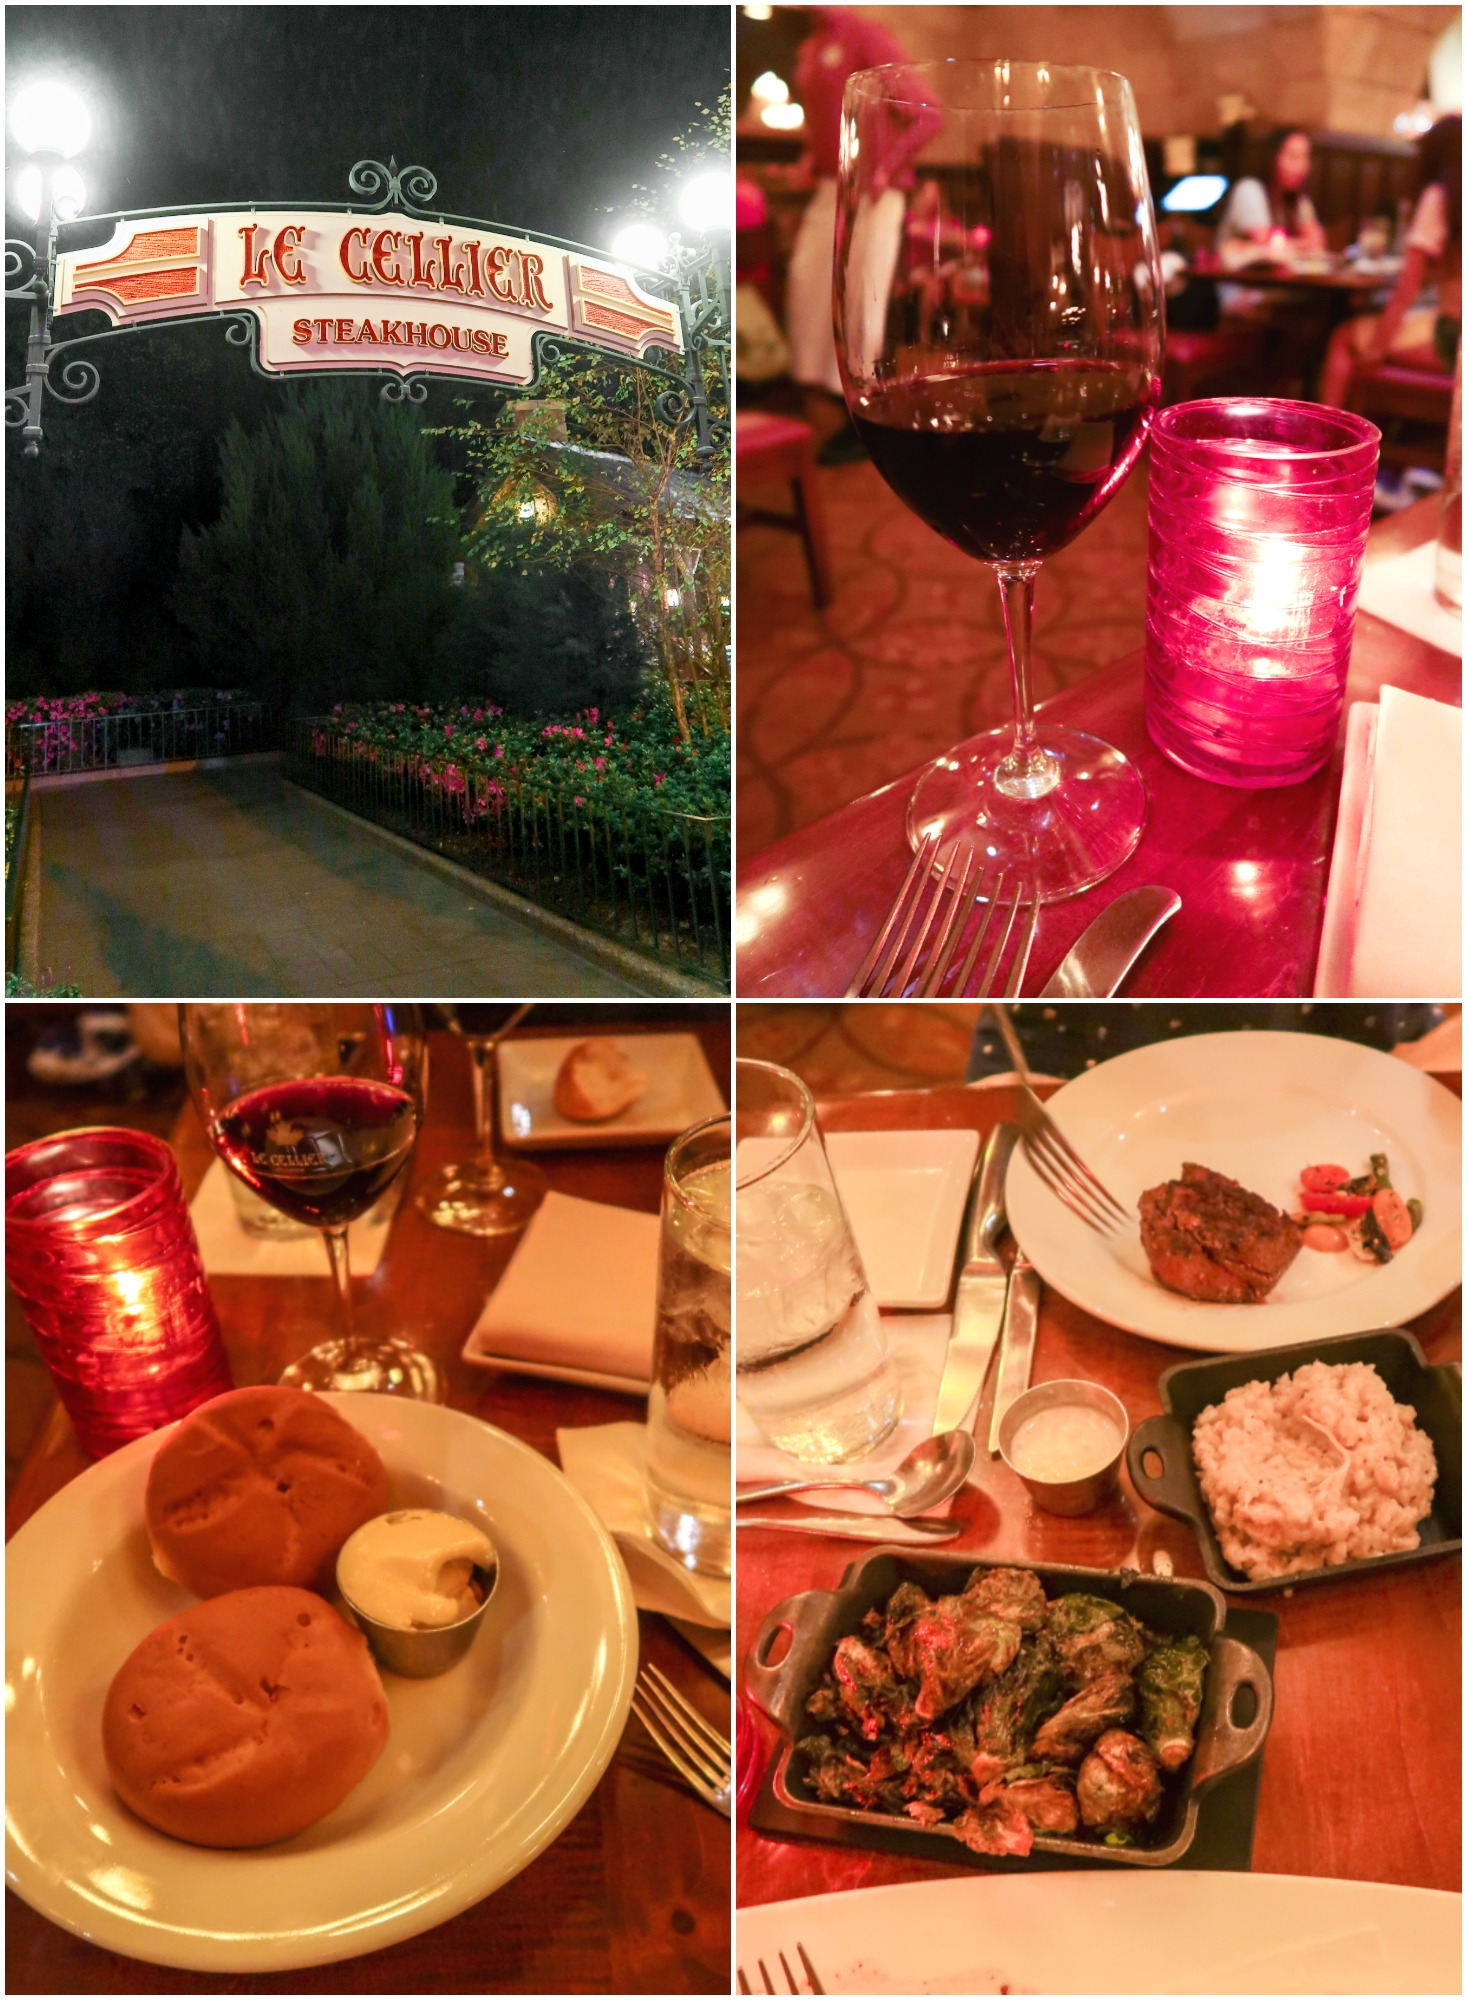 Dinner at Epcot Le Cellier Steakhouse WALT DISNEY WORLD